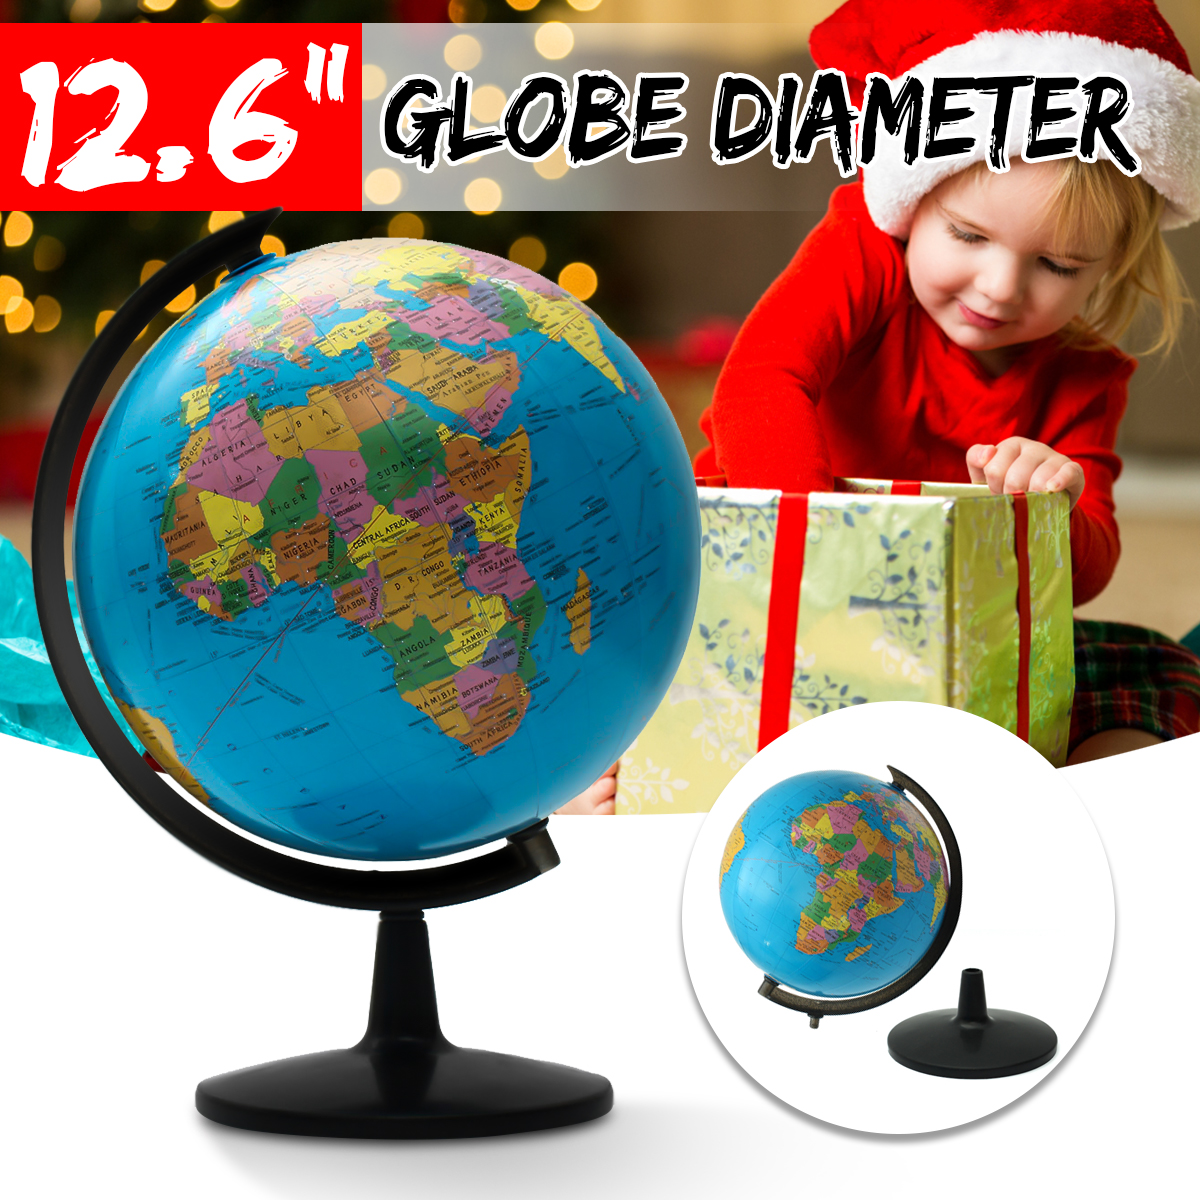 Hot sale kiwarm 32cm world globe map ornaments with swivel stand kiwarm 32cm world globe map ornaments with swivel stand world map geography study home office shop desk figurines decor gifts gumiabroncs Image collections